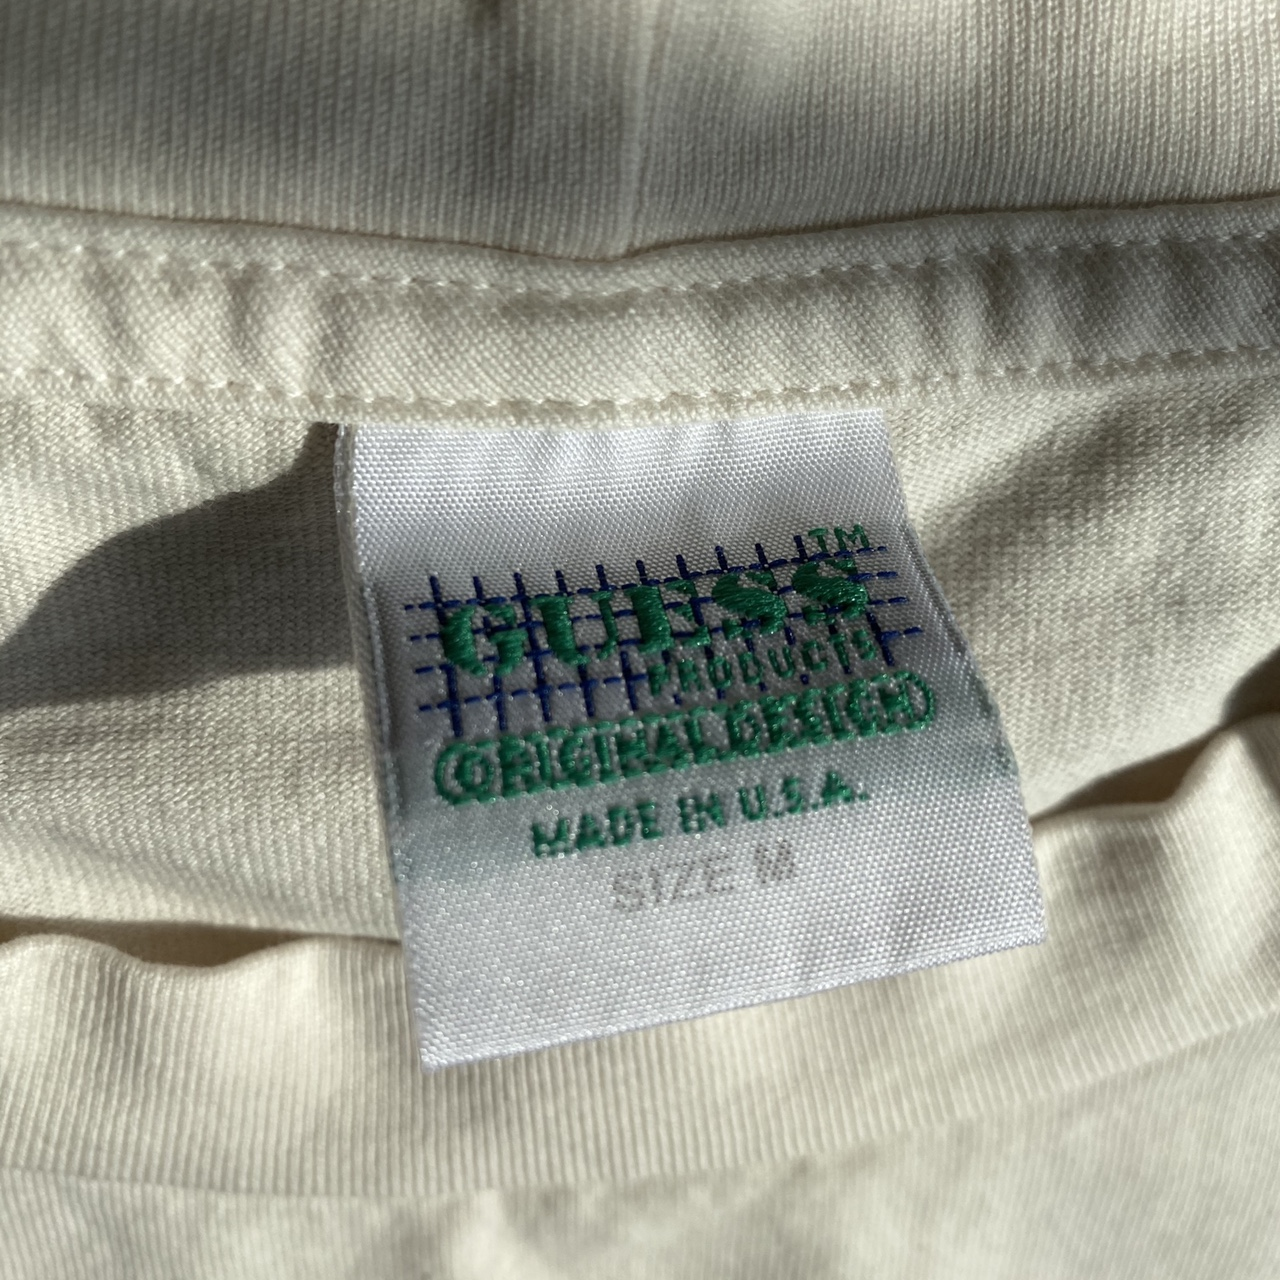 Product Image 3 - Vintage guess tee off white